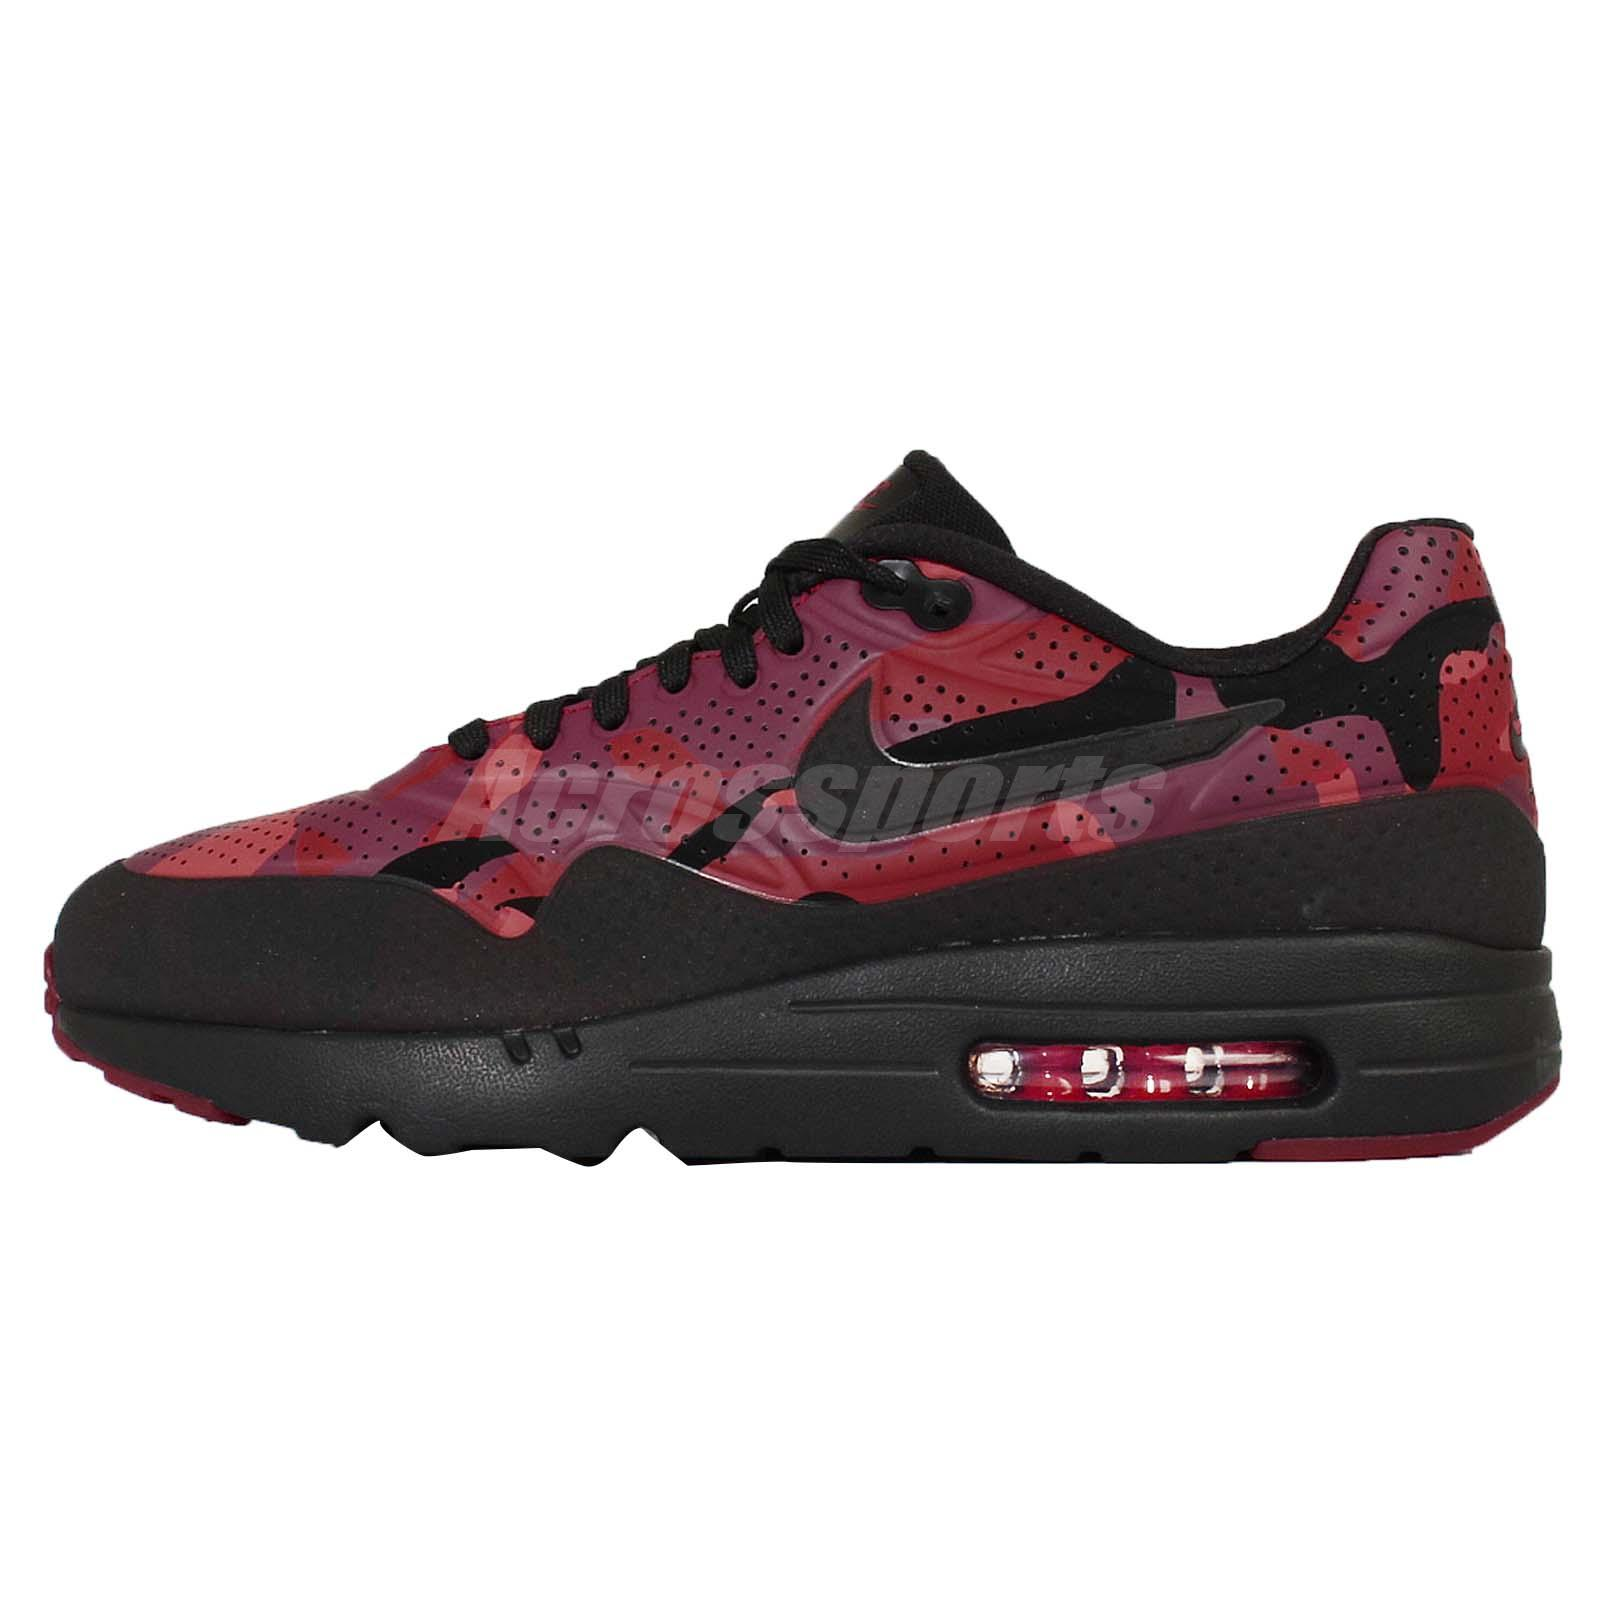 nike air max 1 ultra moire print black red camo mens. Black Bedroom Furniture Sets. Home Design Ideas